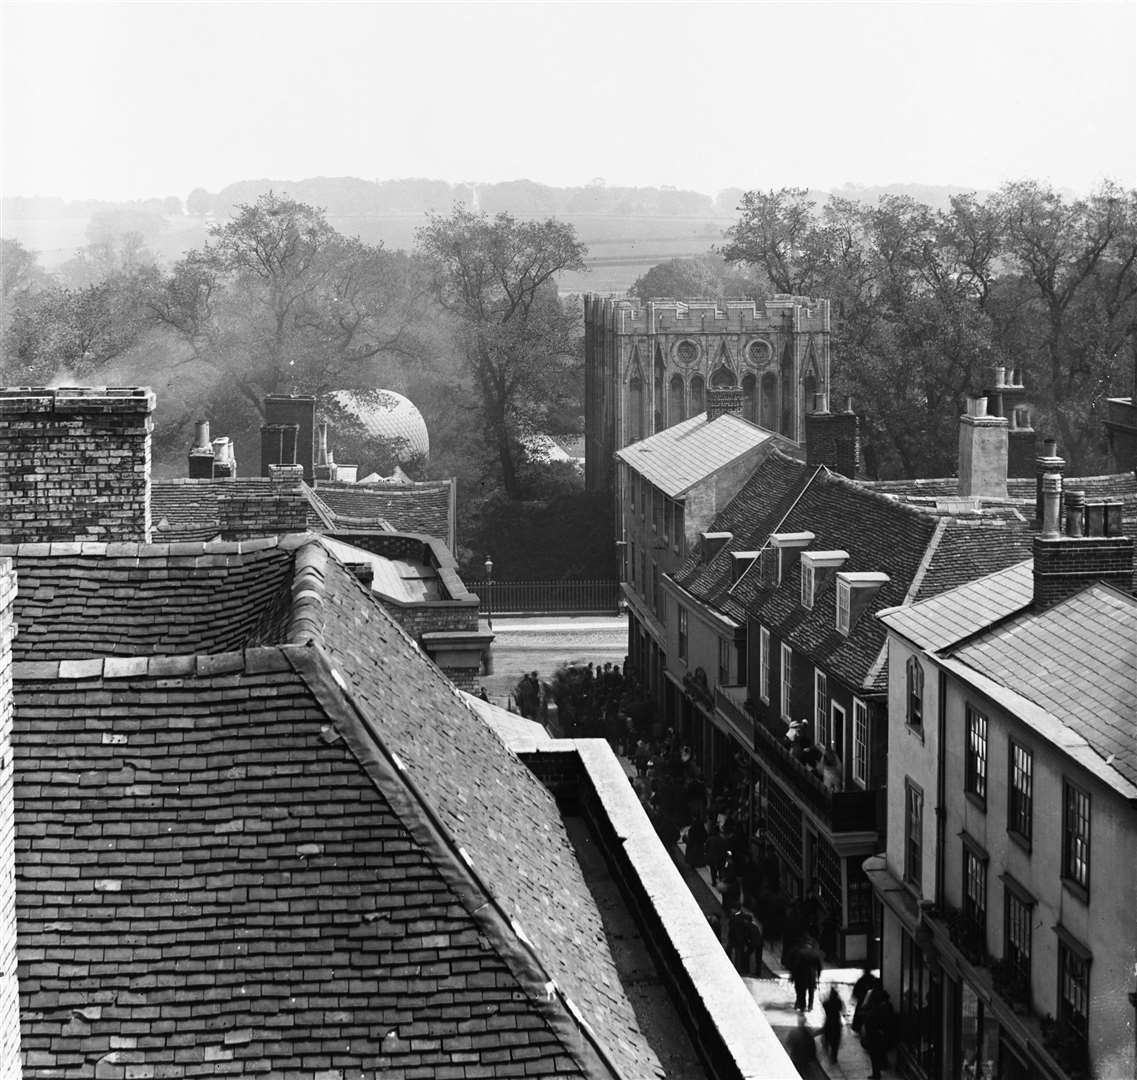 View down Abbeygate Street, Bury St Edmunds, with balloon in the AbbeyGardens. From the Spanton Jarman collection (5586213)